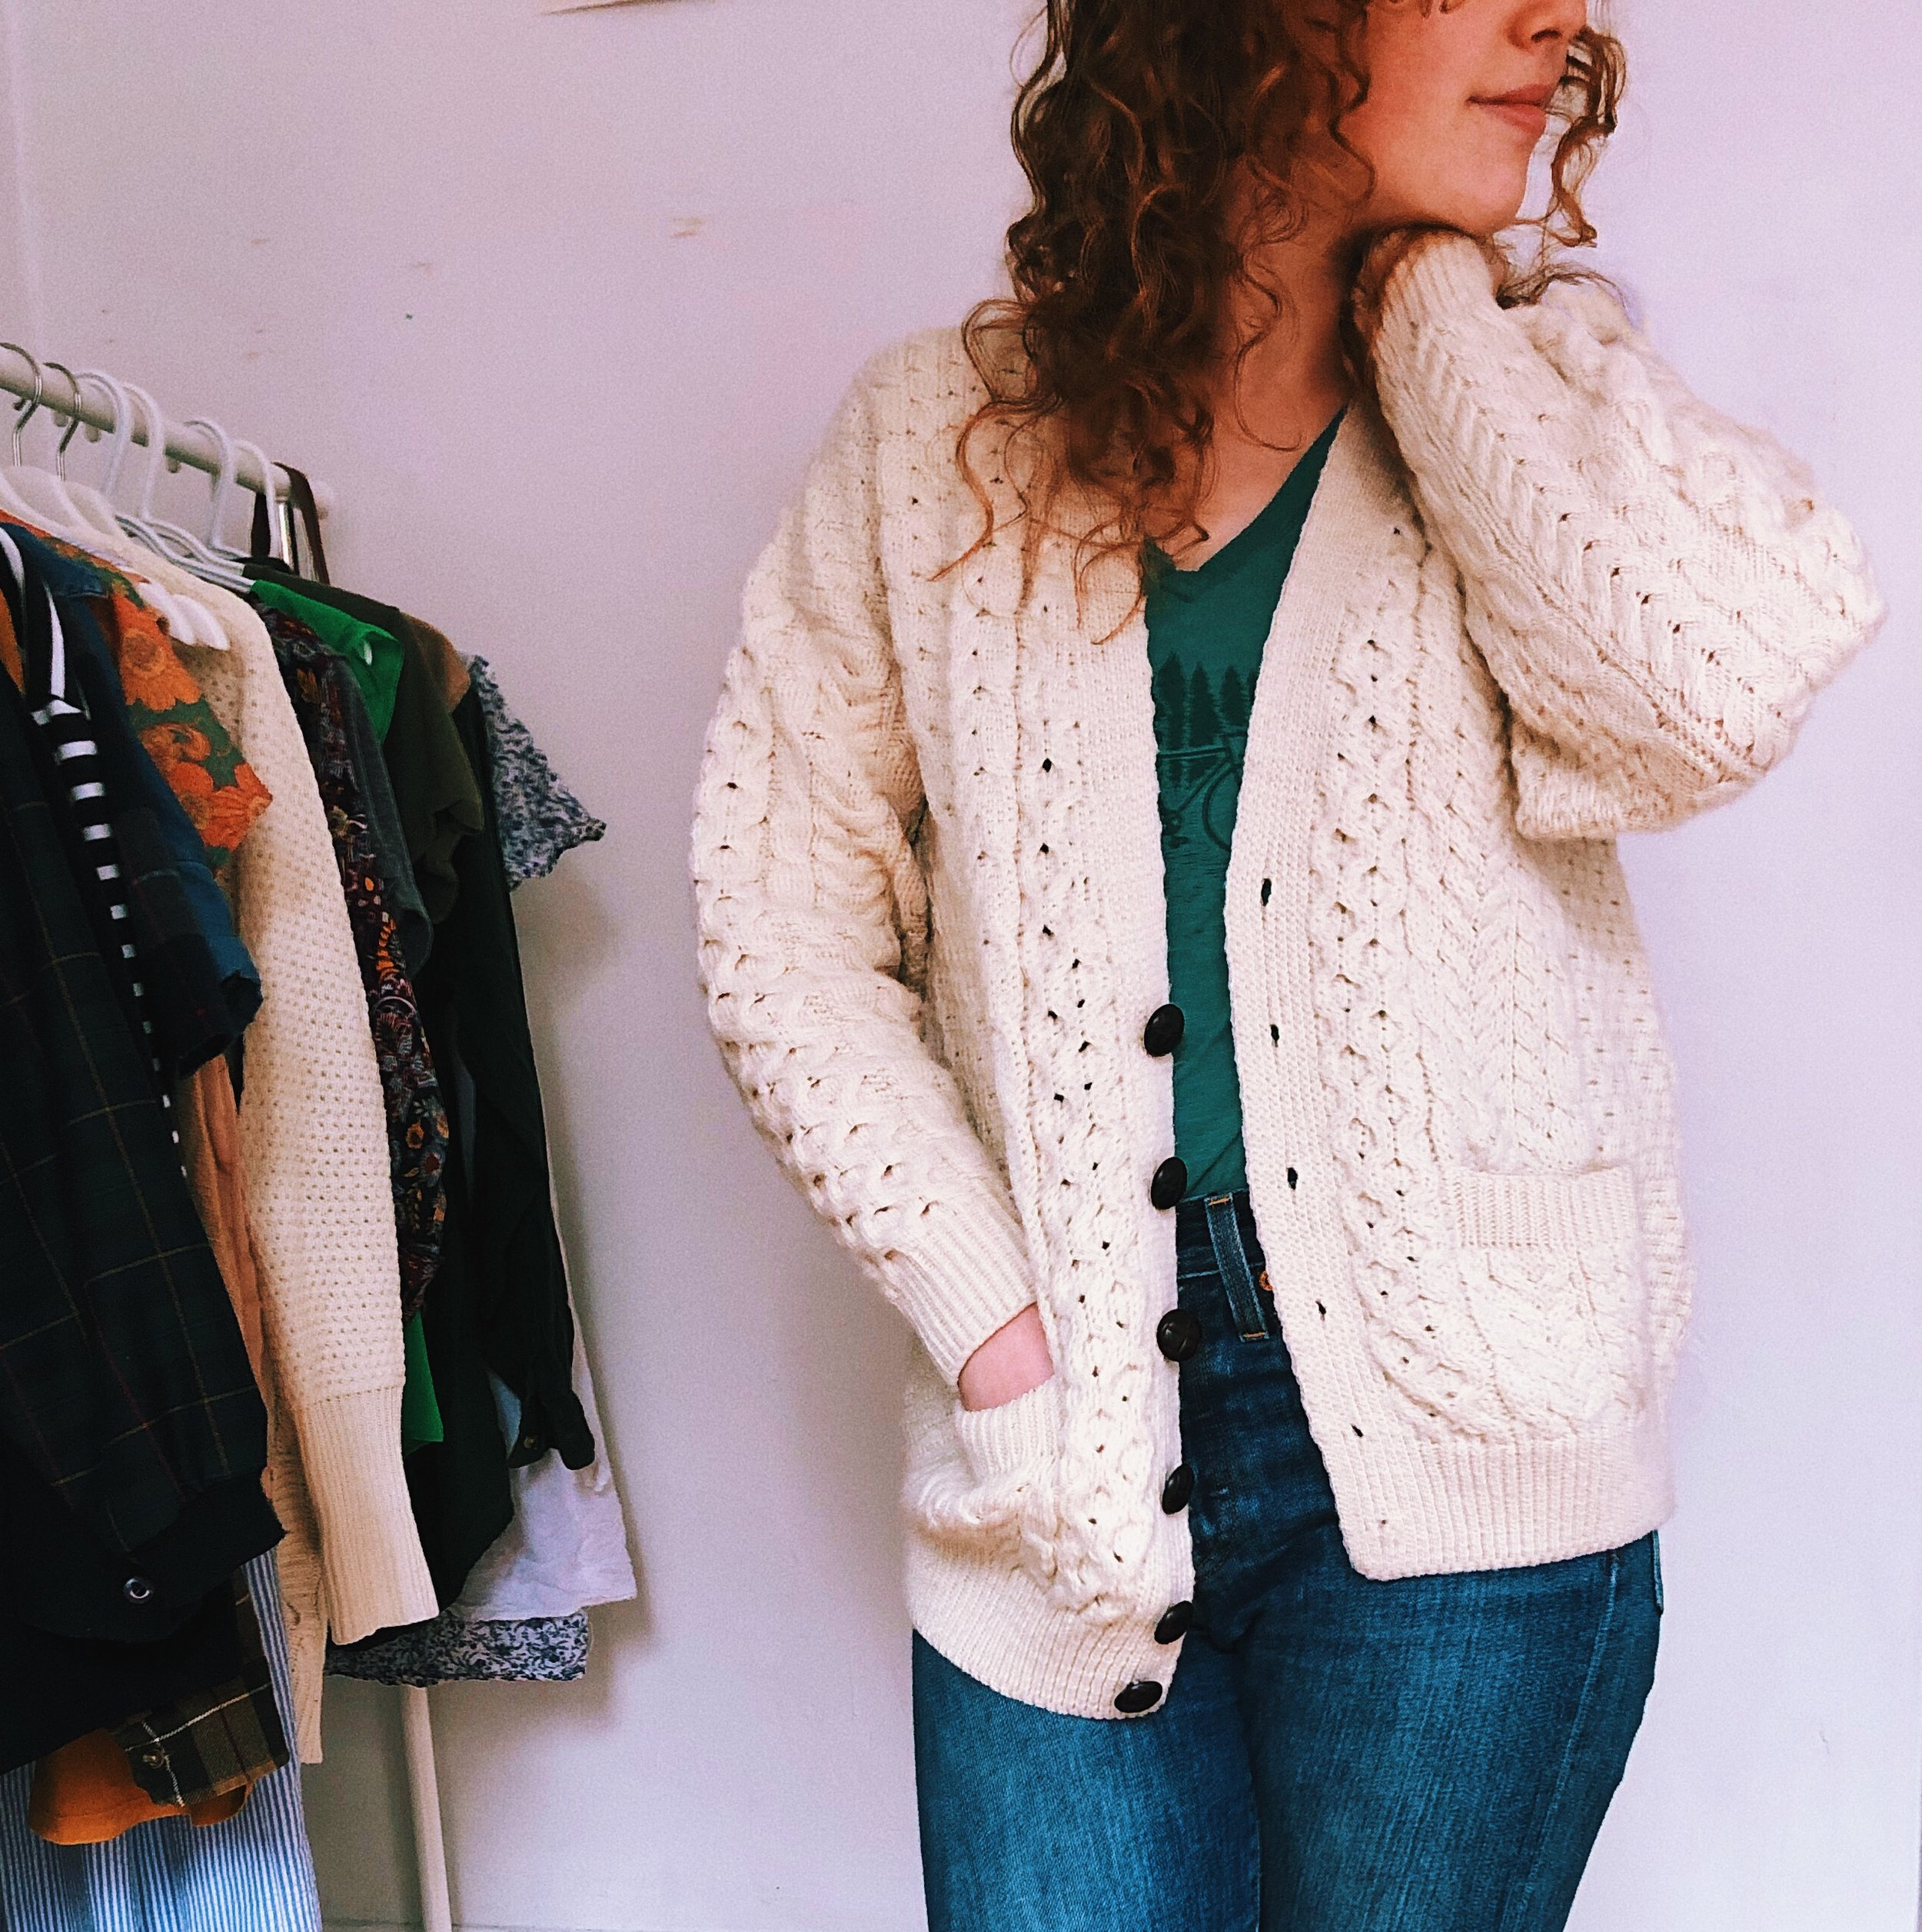 girl wearing cardigan